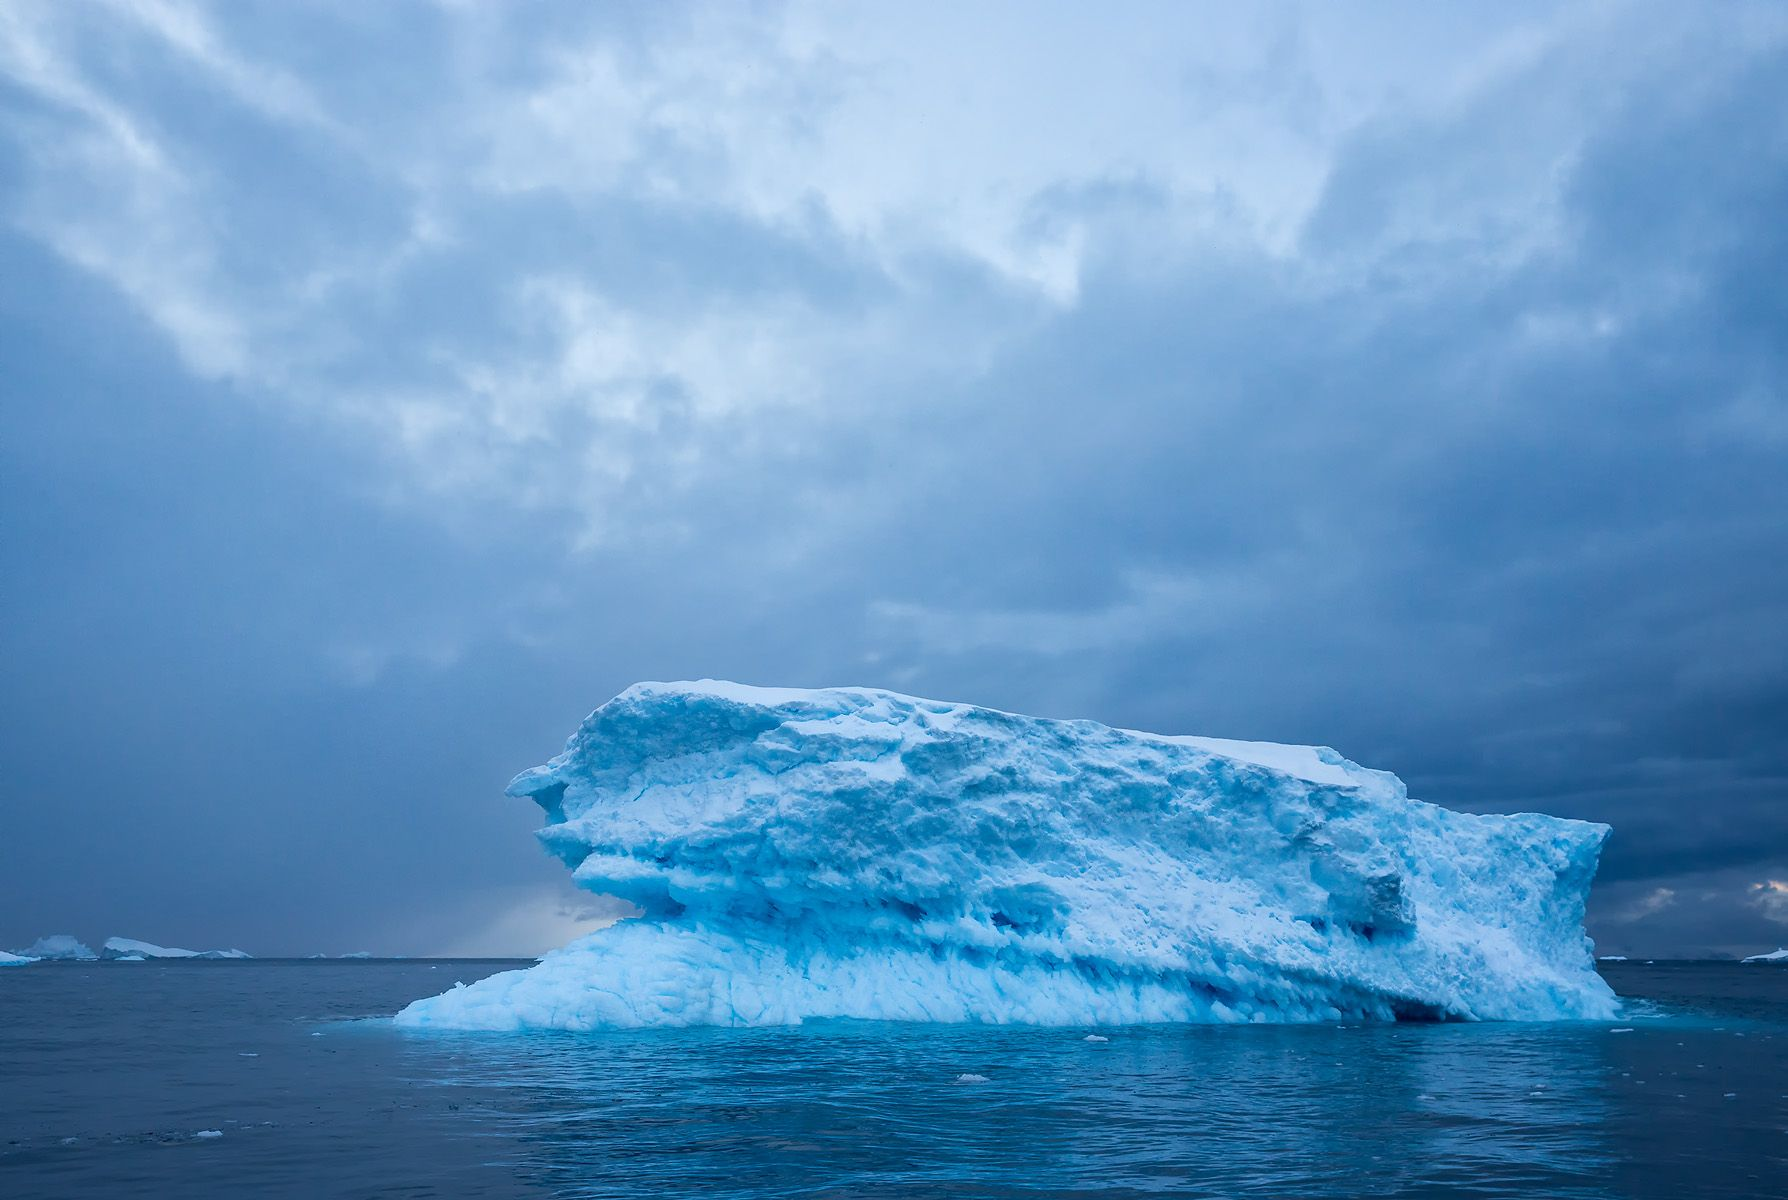 Ice berg shape with dark clouds_S6A5286-Cierva Cove, Hughes Bay, Antarctica.jpg